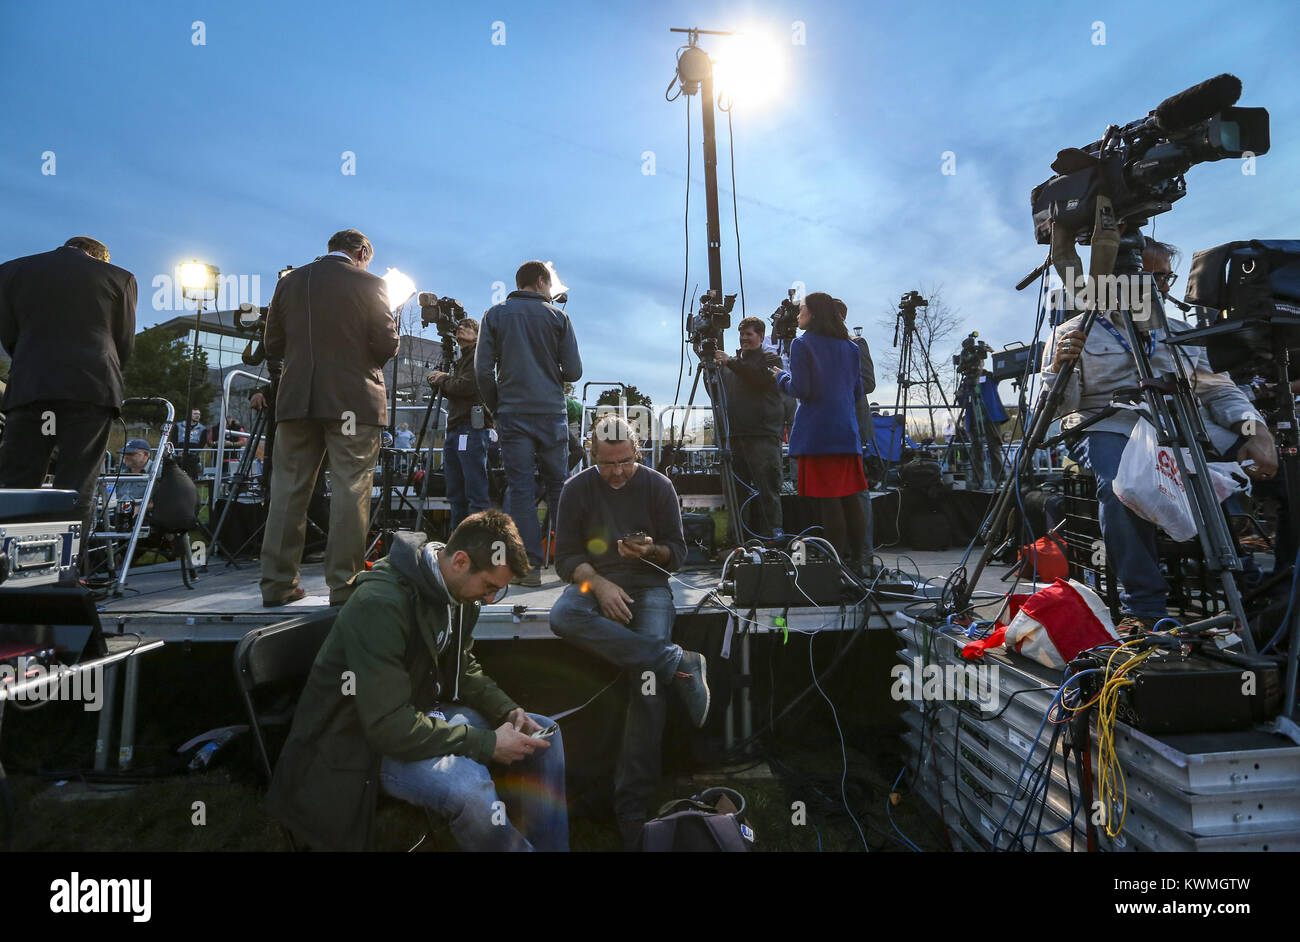 October 28, 2016 - Cedar Rapids, Iowa, U.S. - A media riser is seen full of reporters and cameras while awaiting - Stock Image